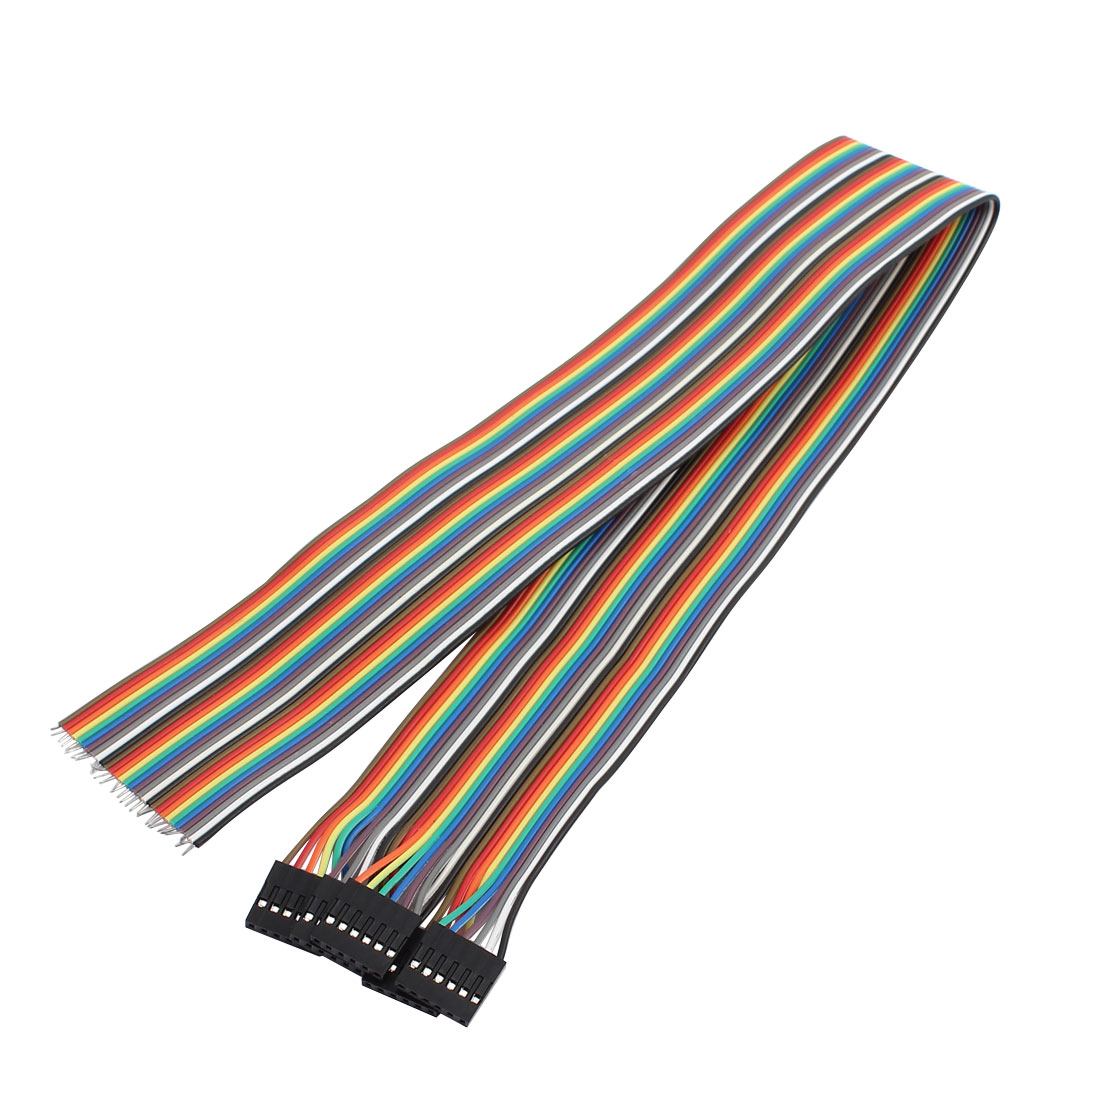 10Pcs 6P Jumper Wires Single Female Head Ribbon Cables Pi Pic Breadboard 50cm Long